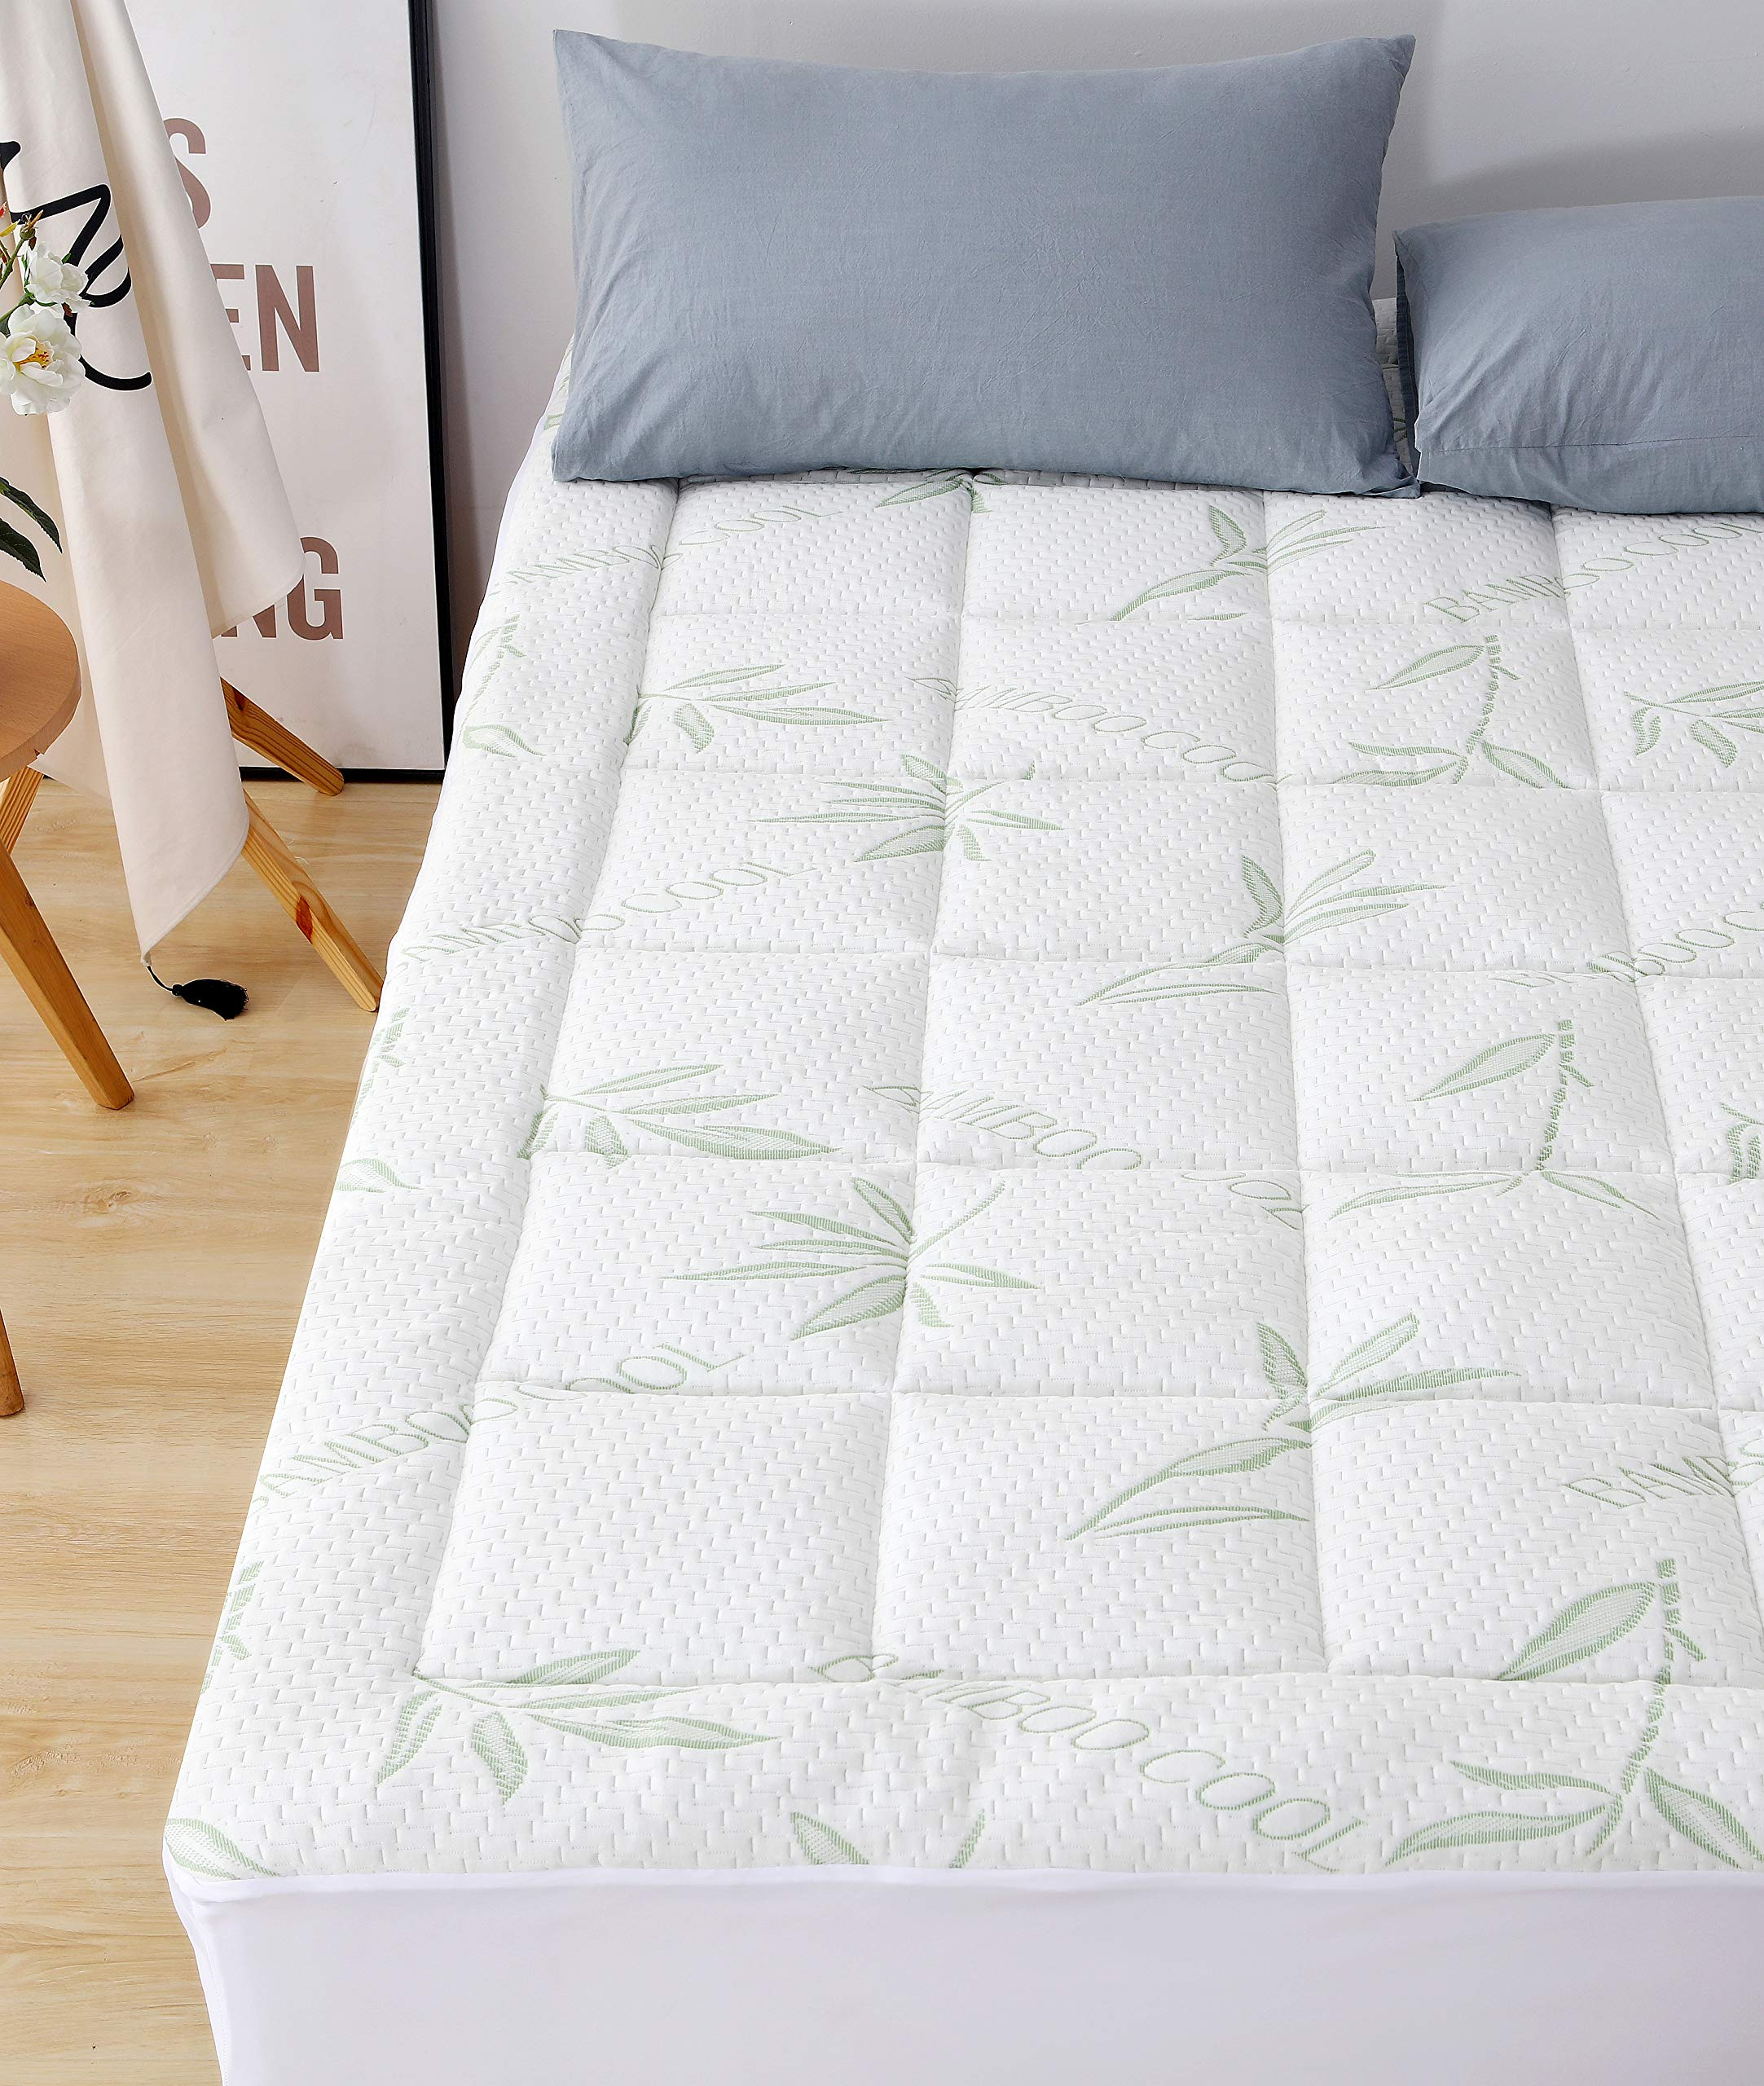 Elegant Comfort Premium Bamboo Mattress Pad-Overfilled Extra Plush Topper Hypoallergenic Breathable Cool Flow Technology, 16'' Deep Pocket, Queen, Green